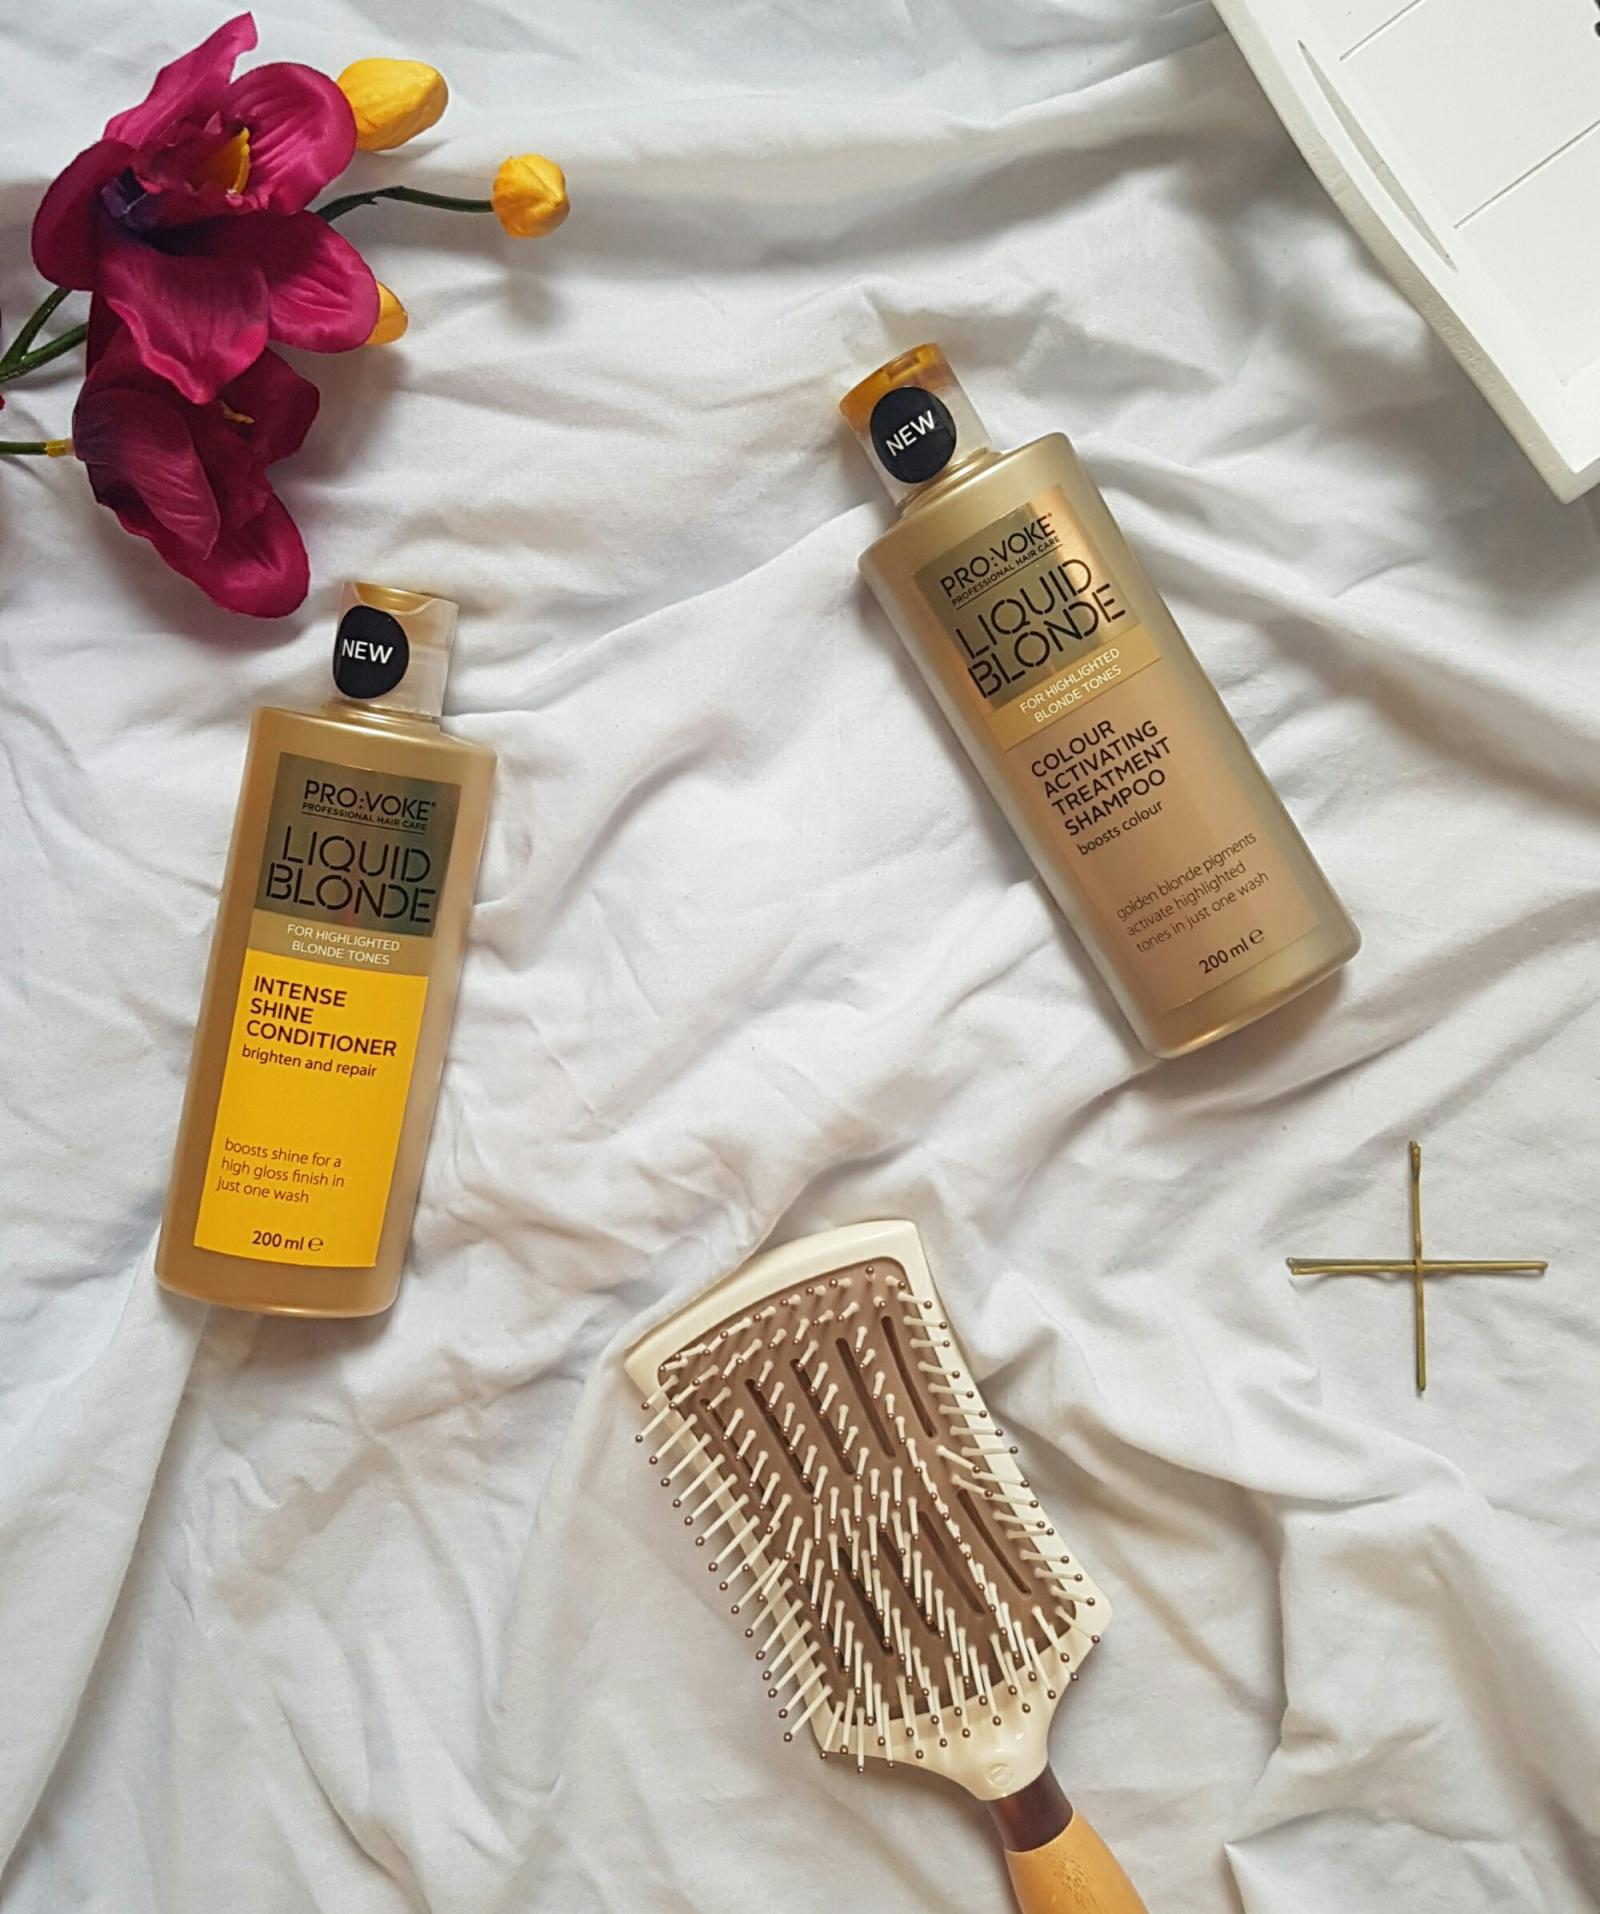 The shampoo you need if you're a golden blondie | Provoke Liquid Blonde Shampoo and Conditioner Review